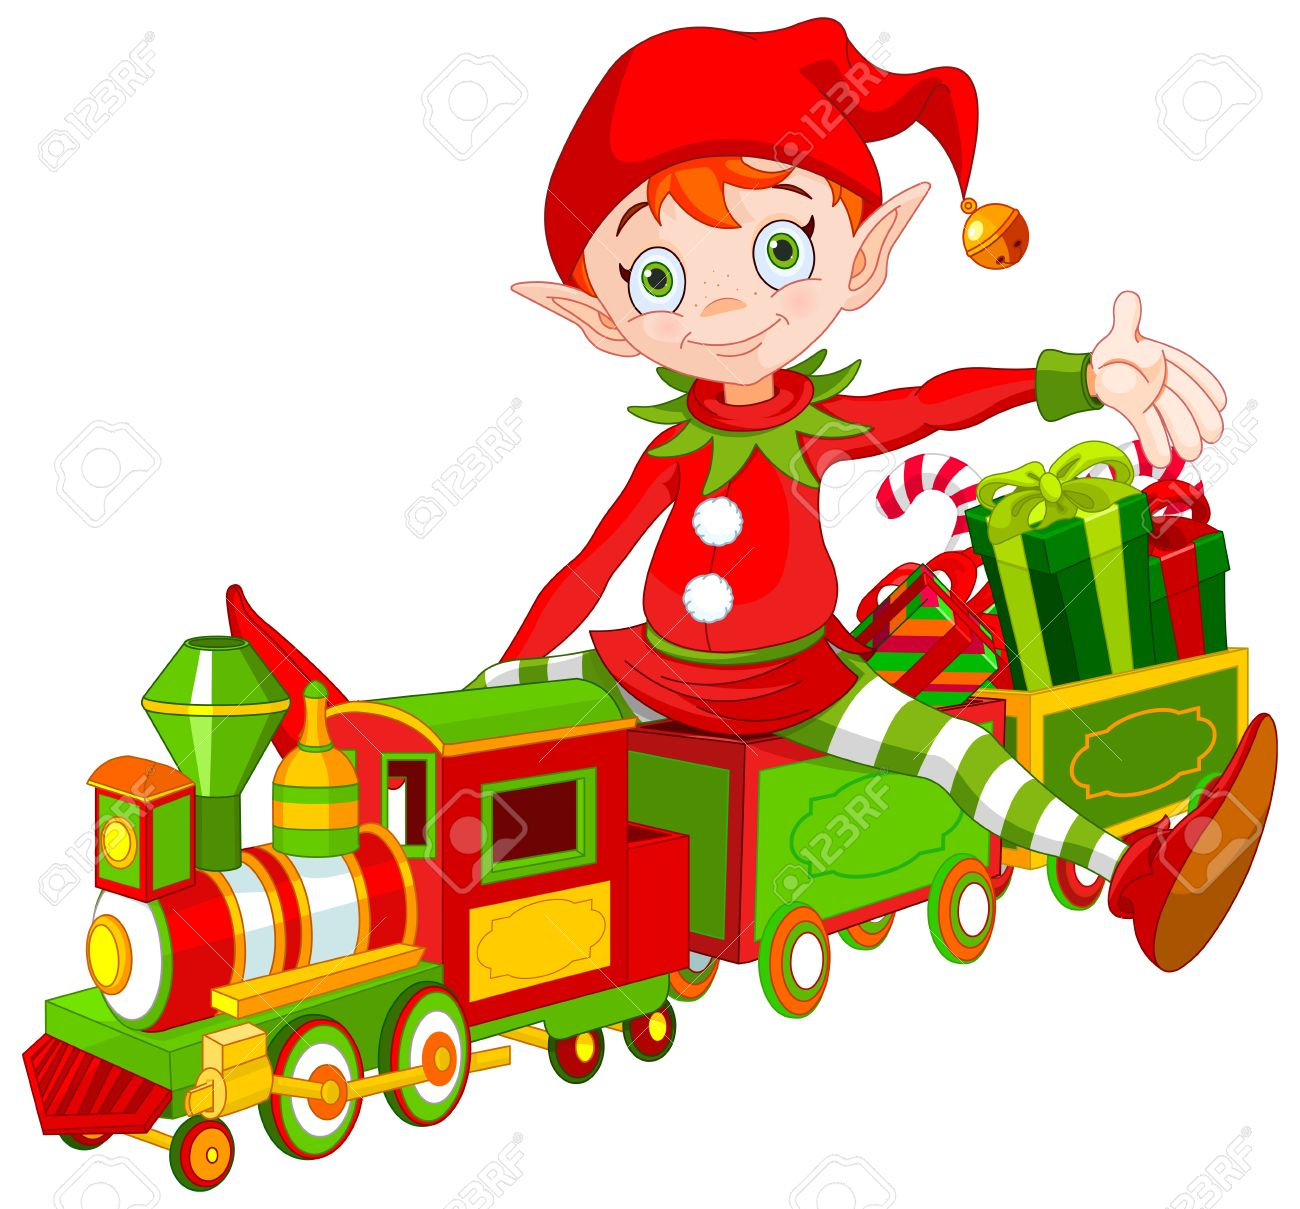 Illustration of cute Christmas elf sits on toy train - 49802029